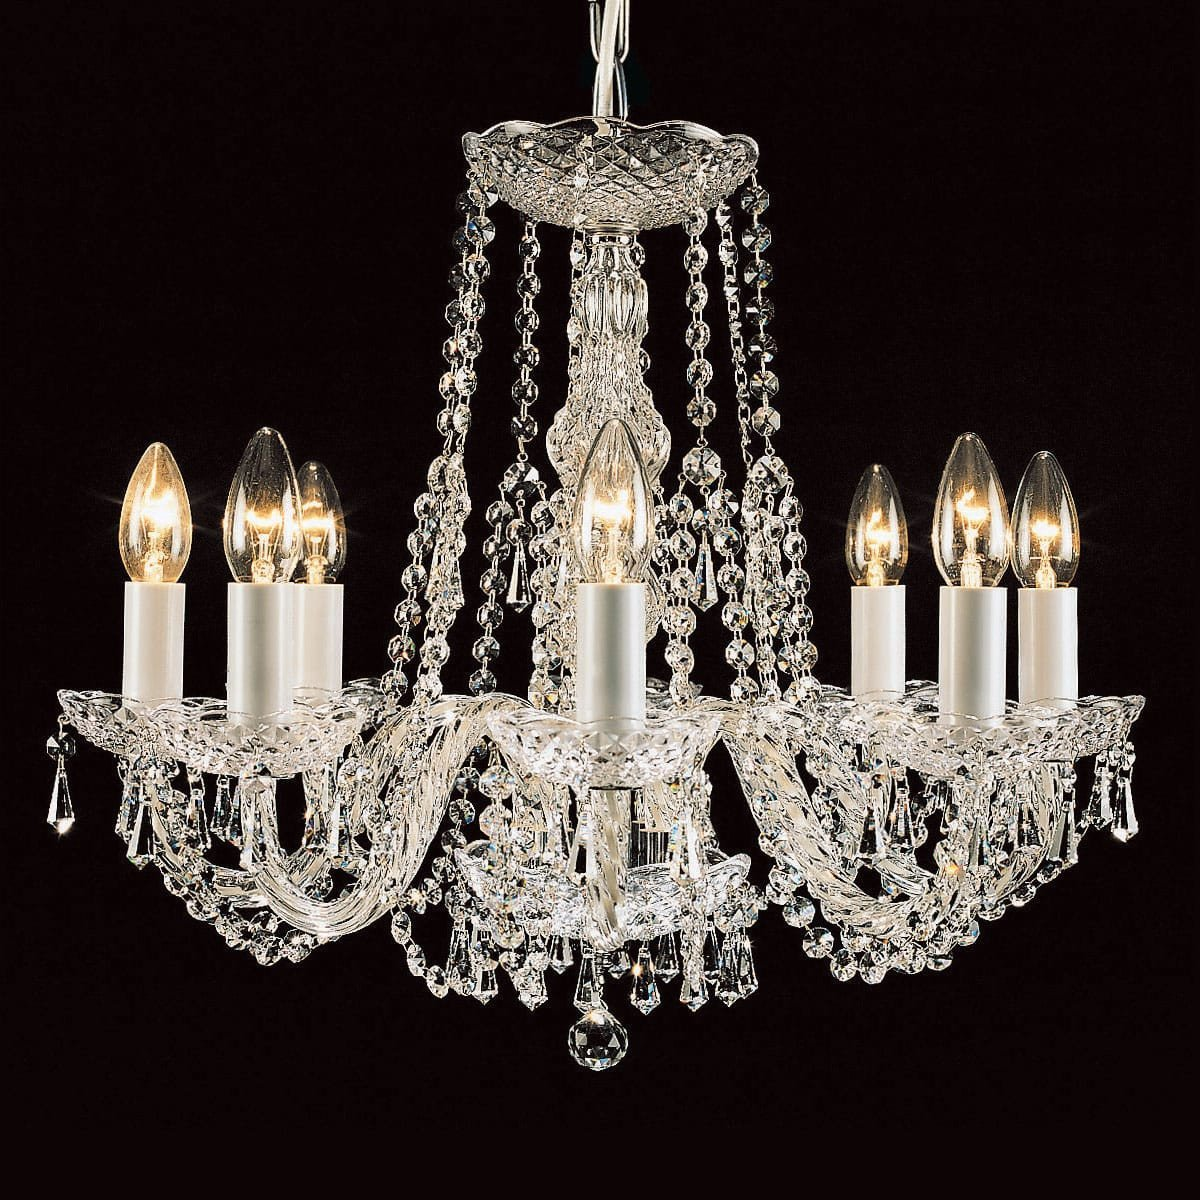 hot sale online a3715 96ff8 Impex Modra 8 Light Strass Crystal Georgian Chandelier